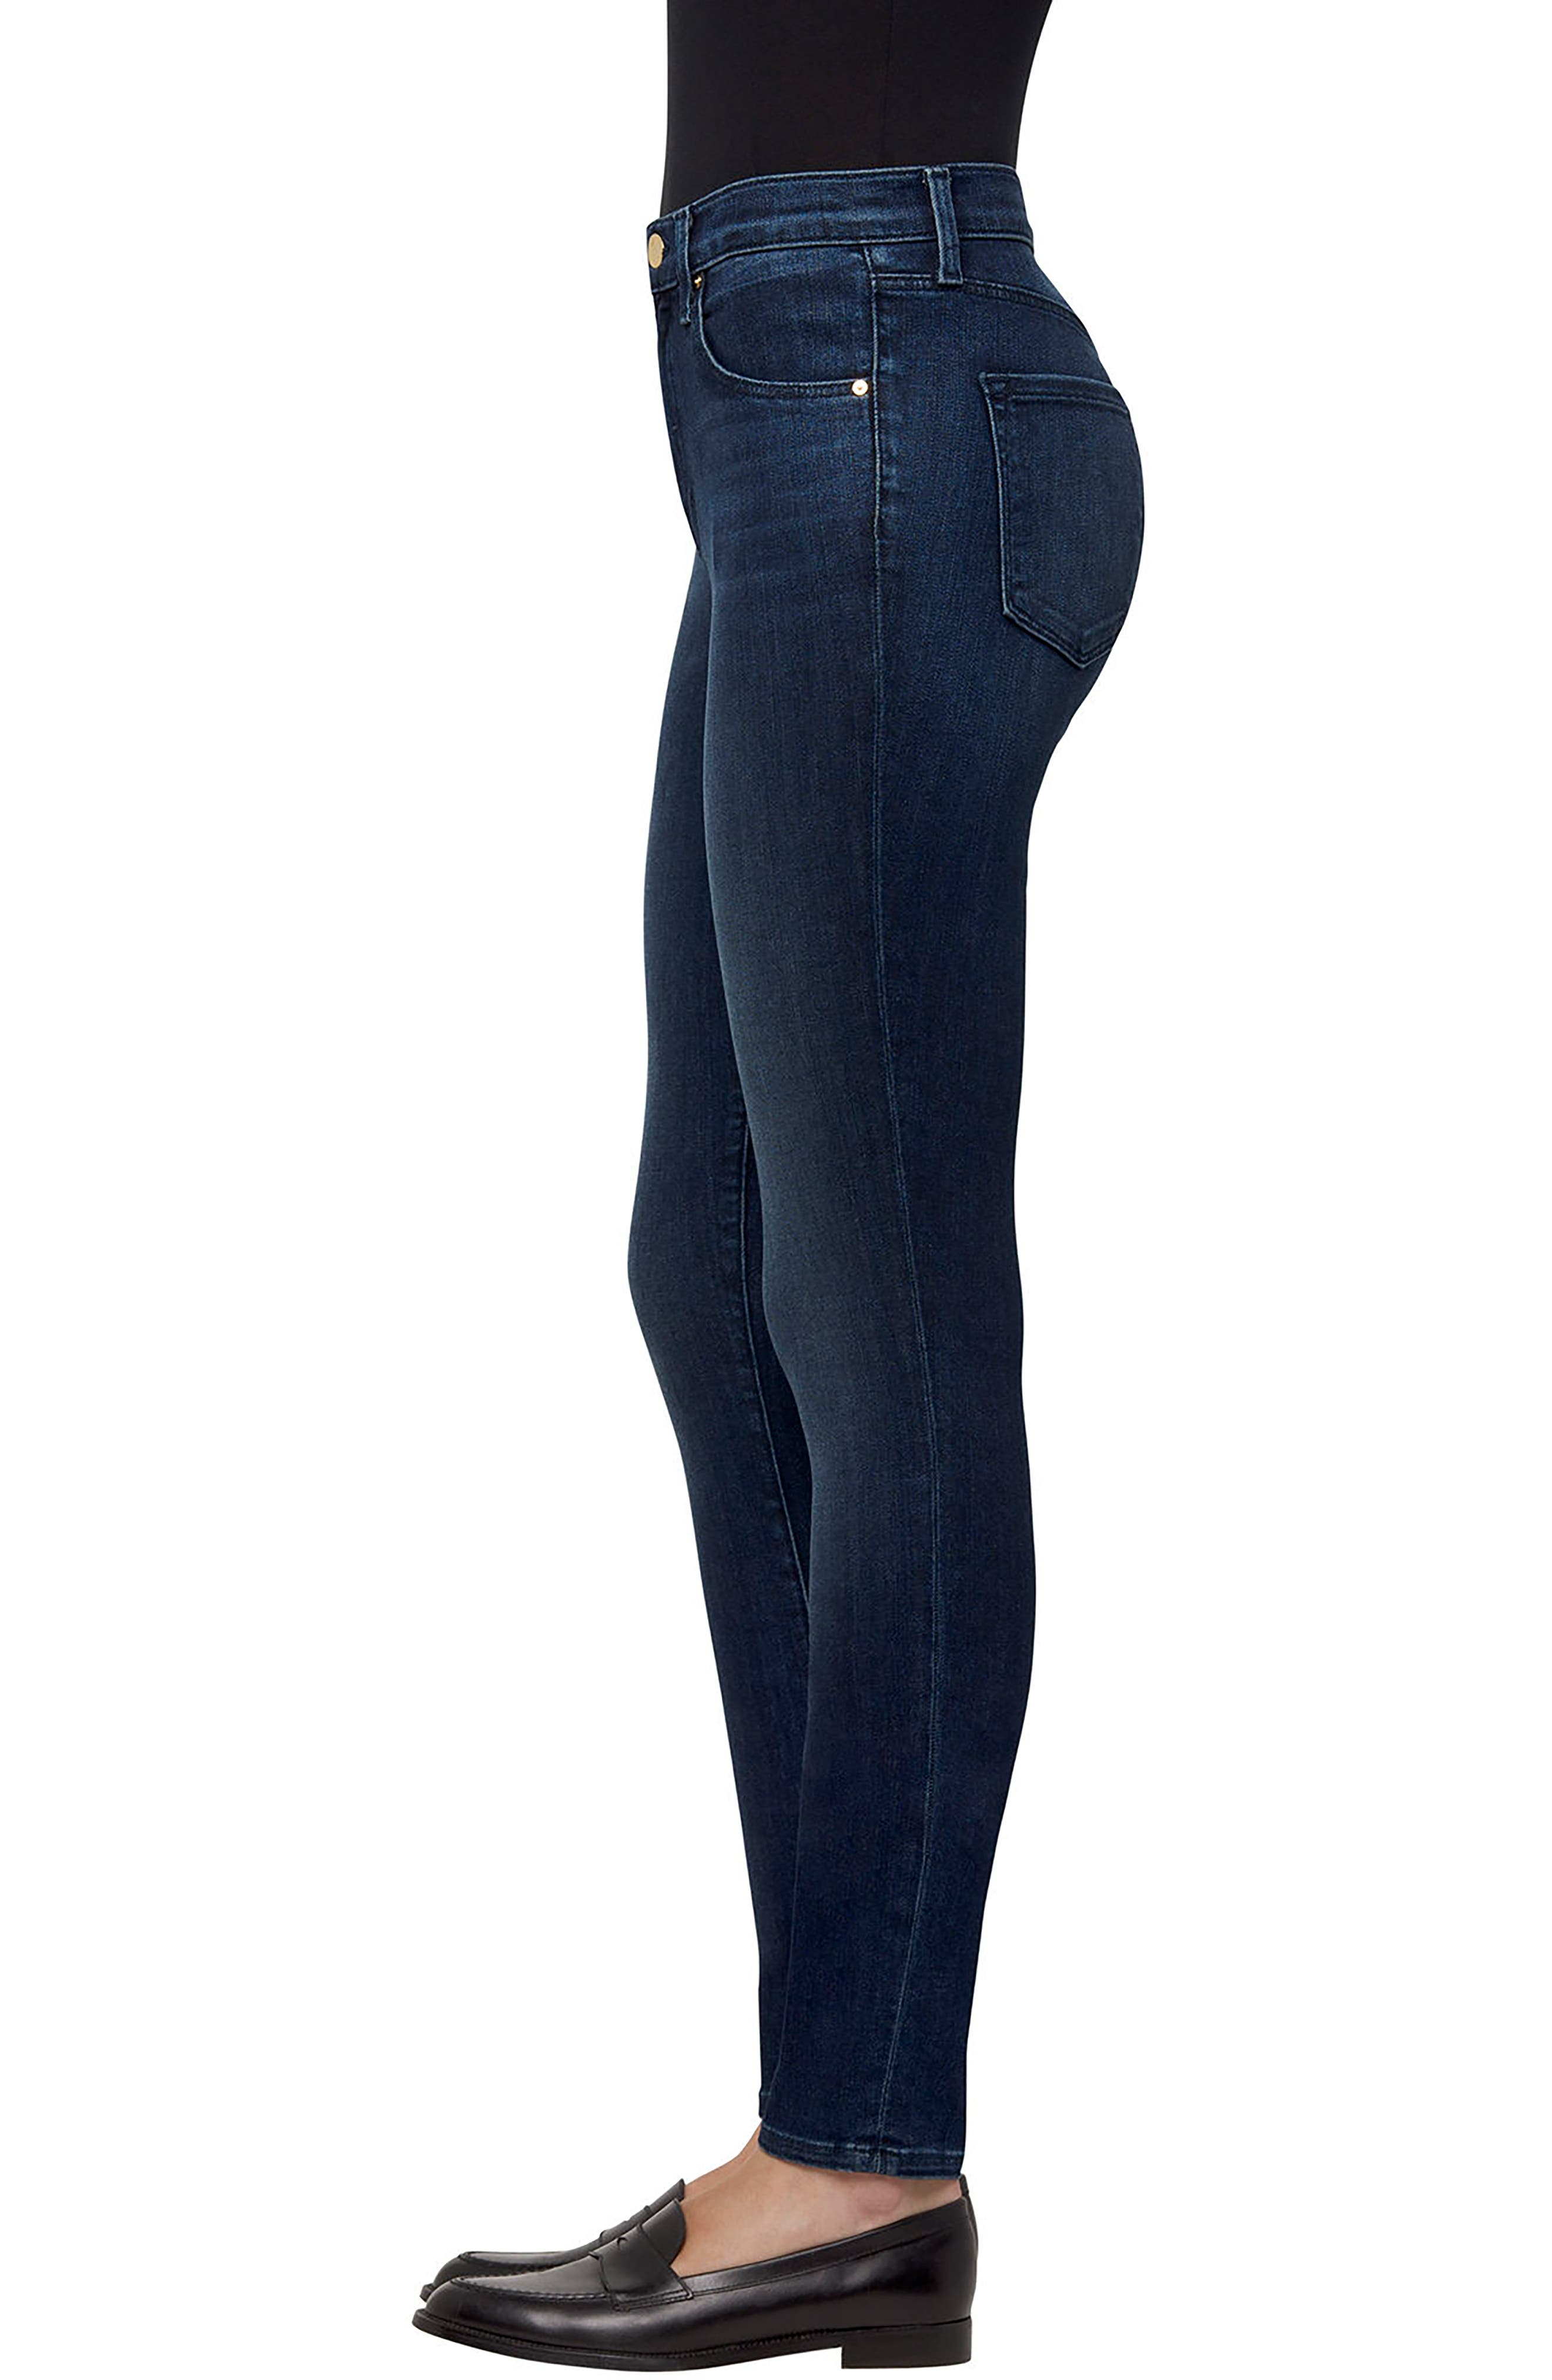 Maria High Waist Skinny Jeans,                             Alternate thumbnail 3, color,                             413